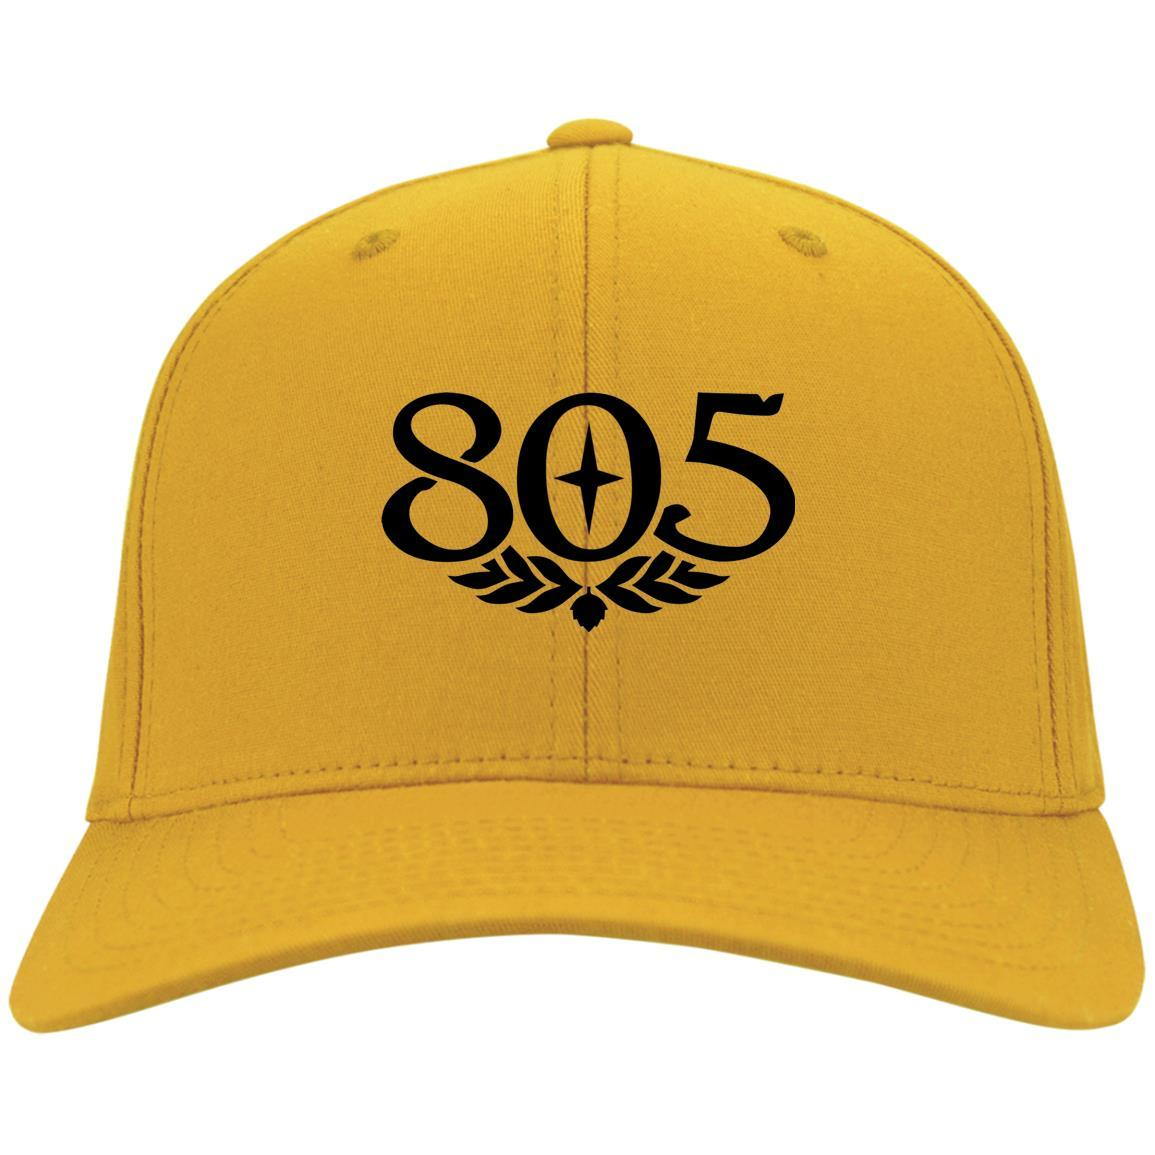 805 Beer Black - Port & Co. Twill Cap Gold